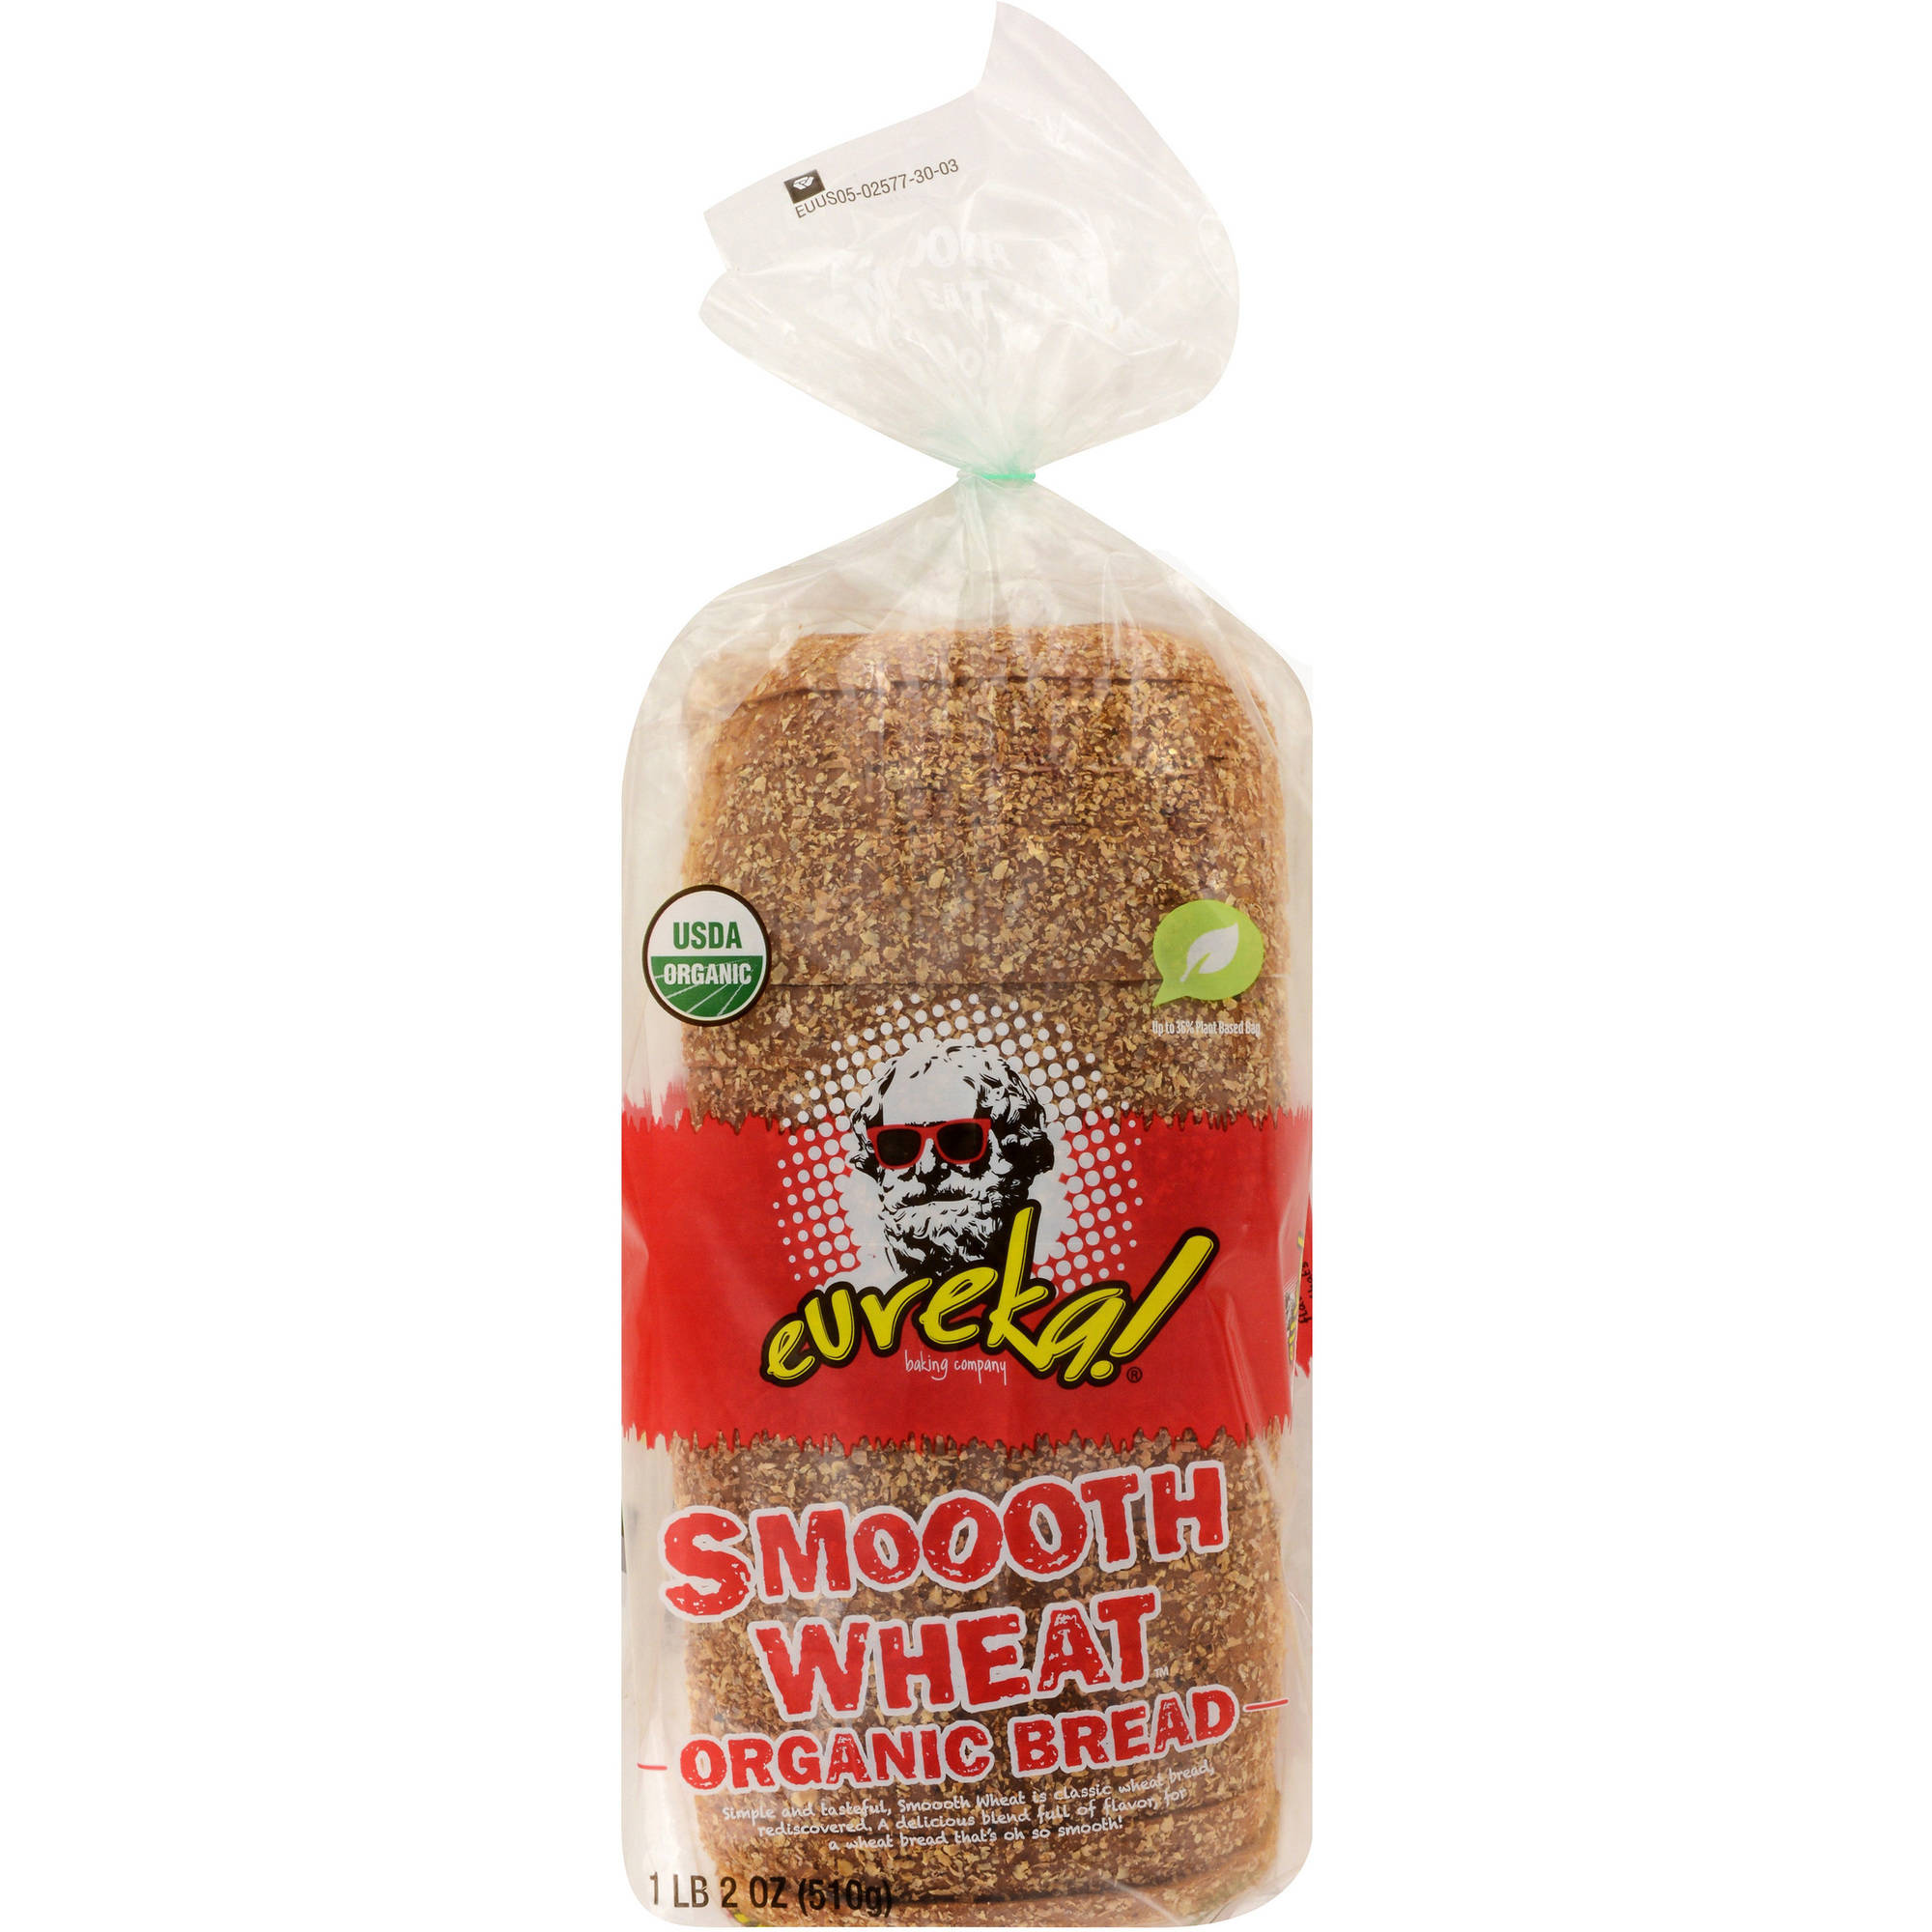 eureka! Smooth Wheat Bread, 18 oz